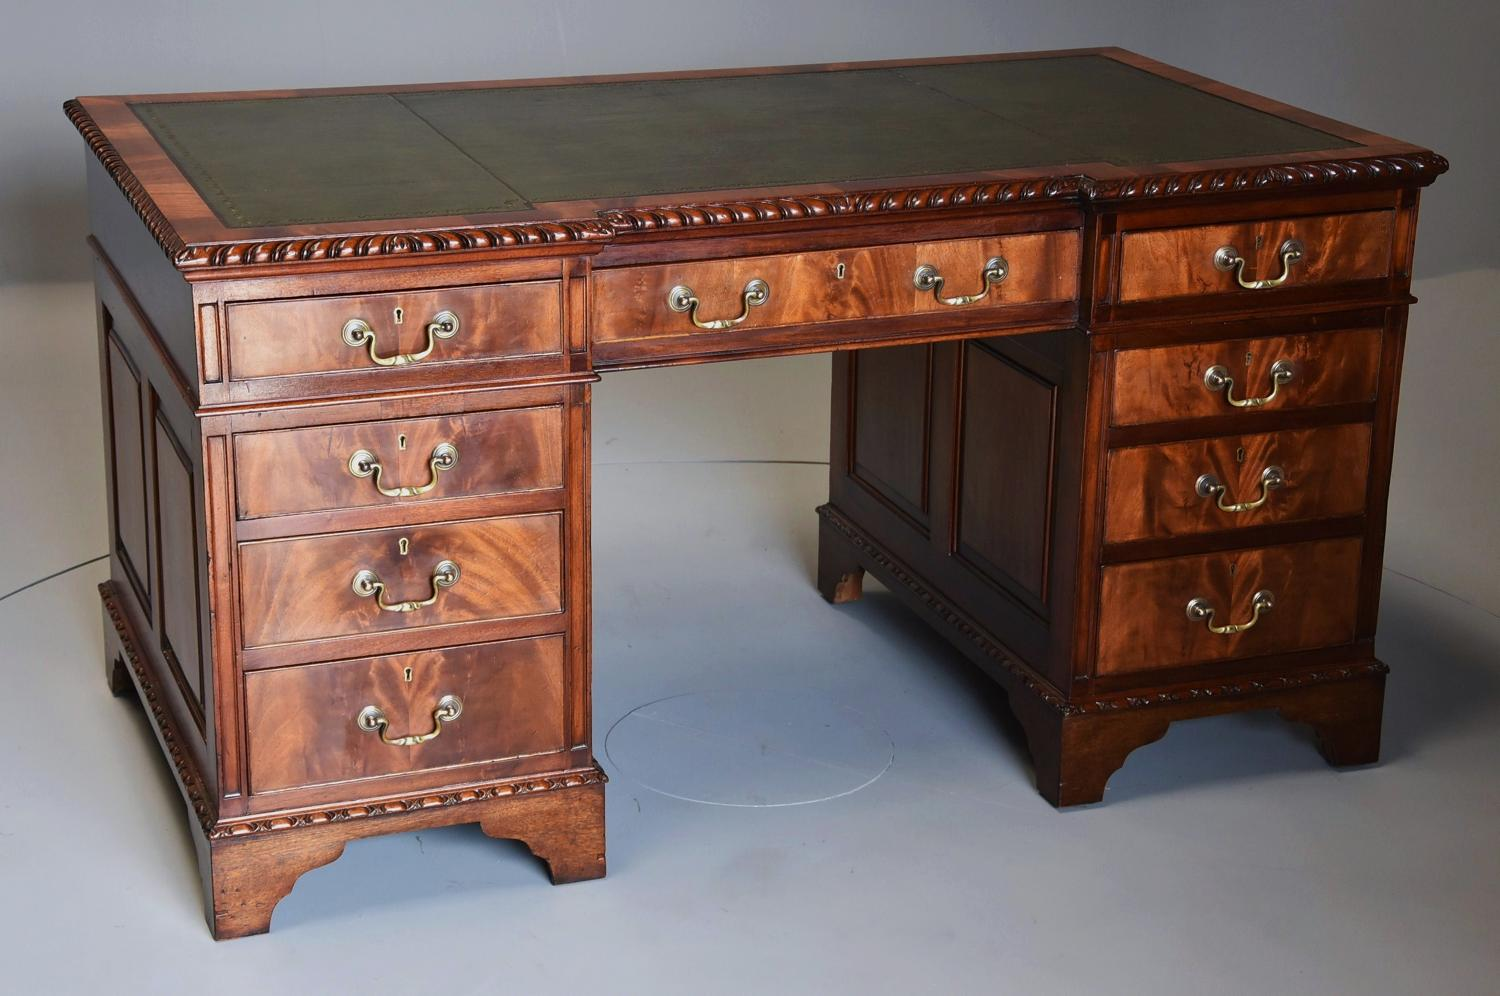 Early 20th century mahogany pedestal desk